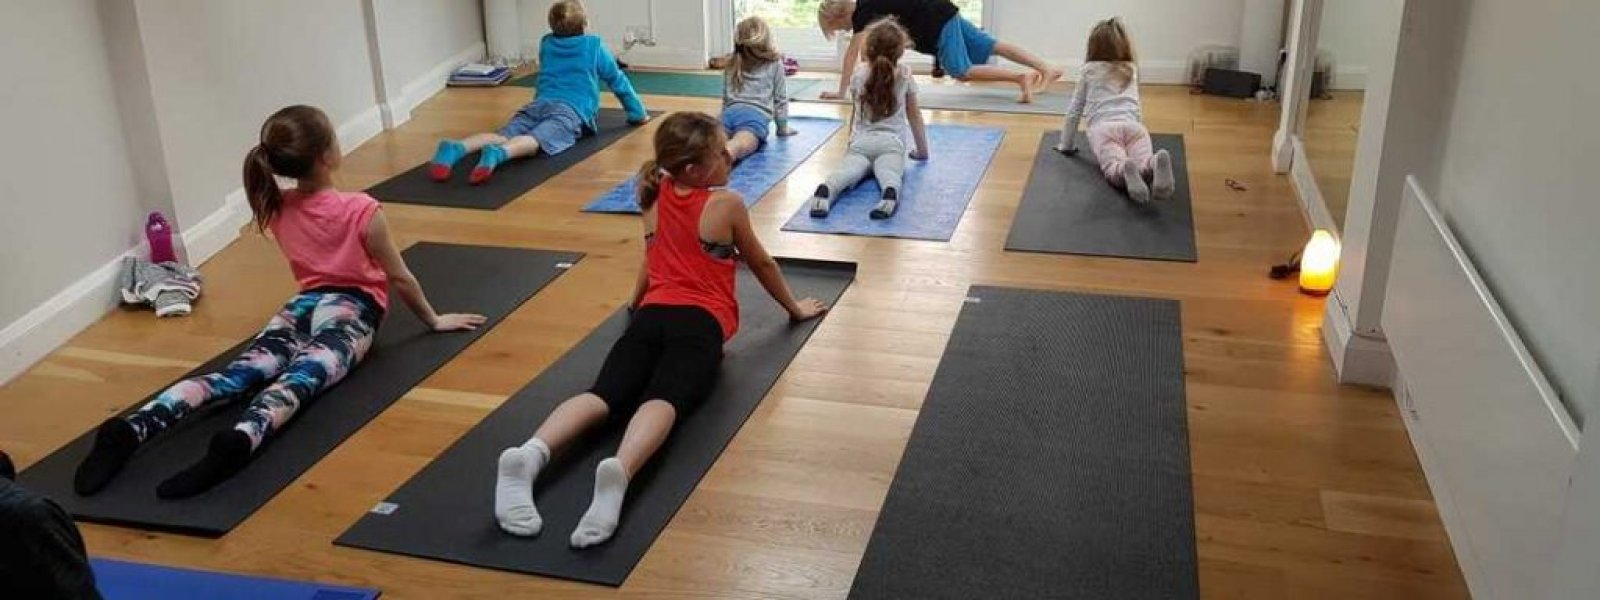 Yoga and mediation in UK schools